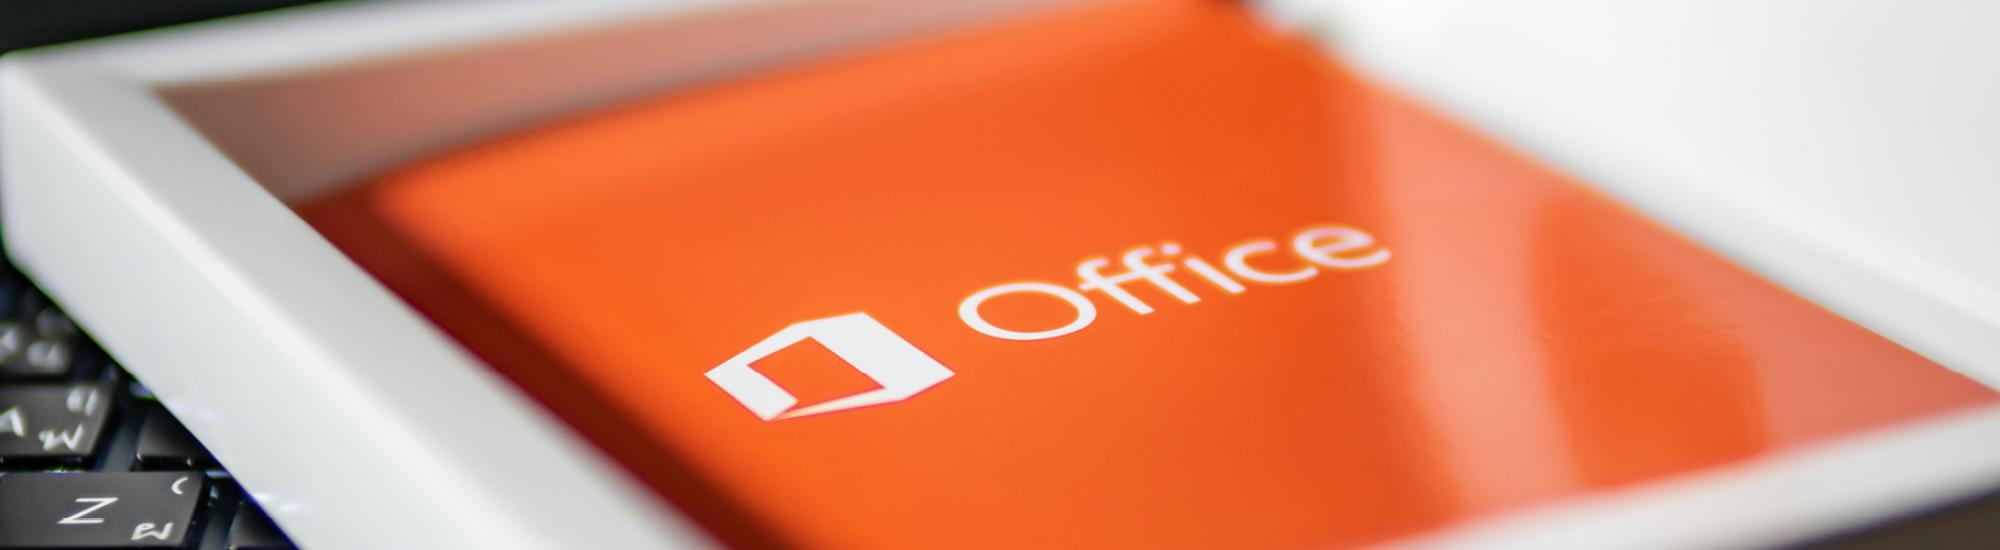 Office365 Unleash the internal comms potential HEAD